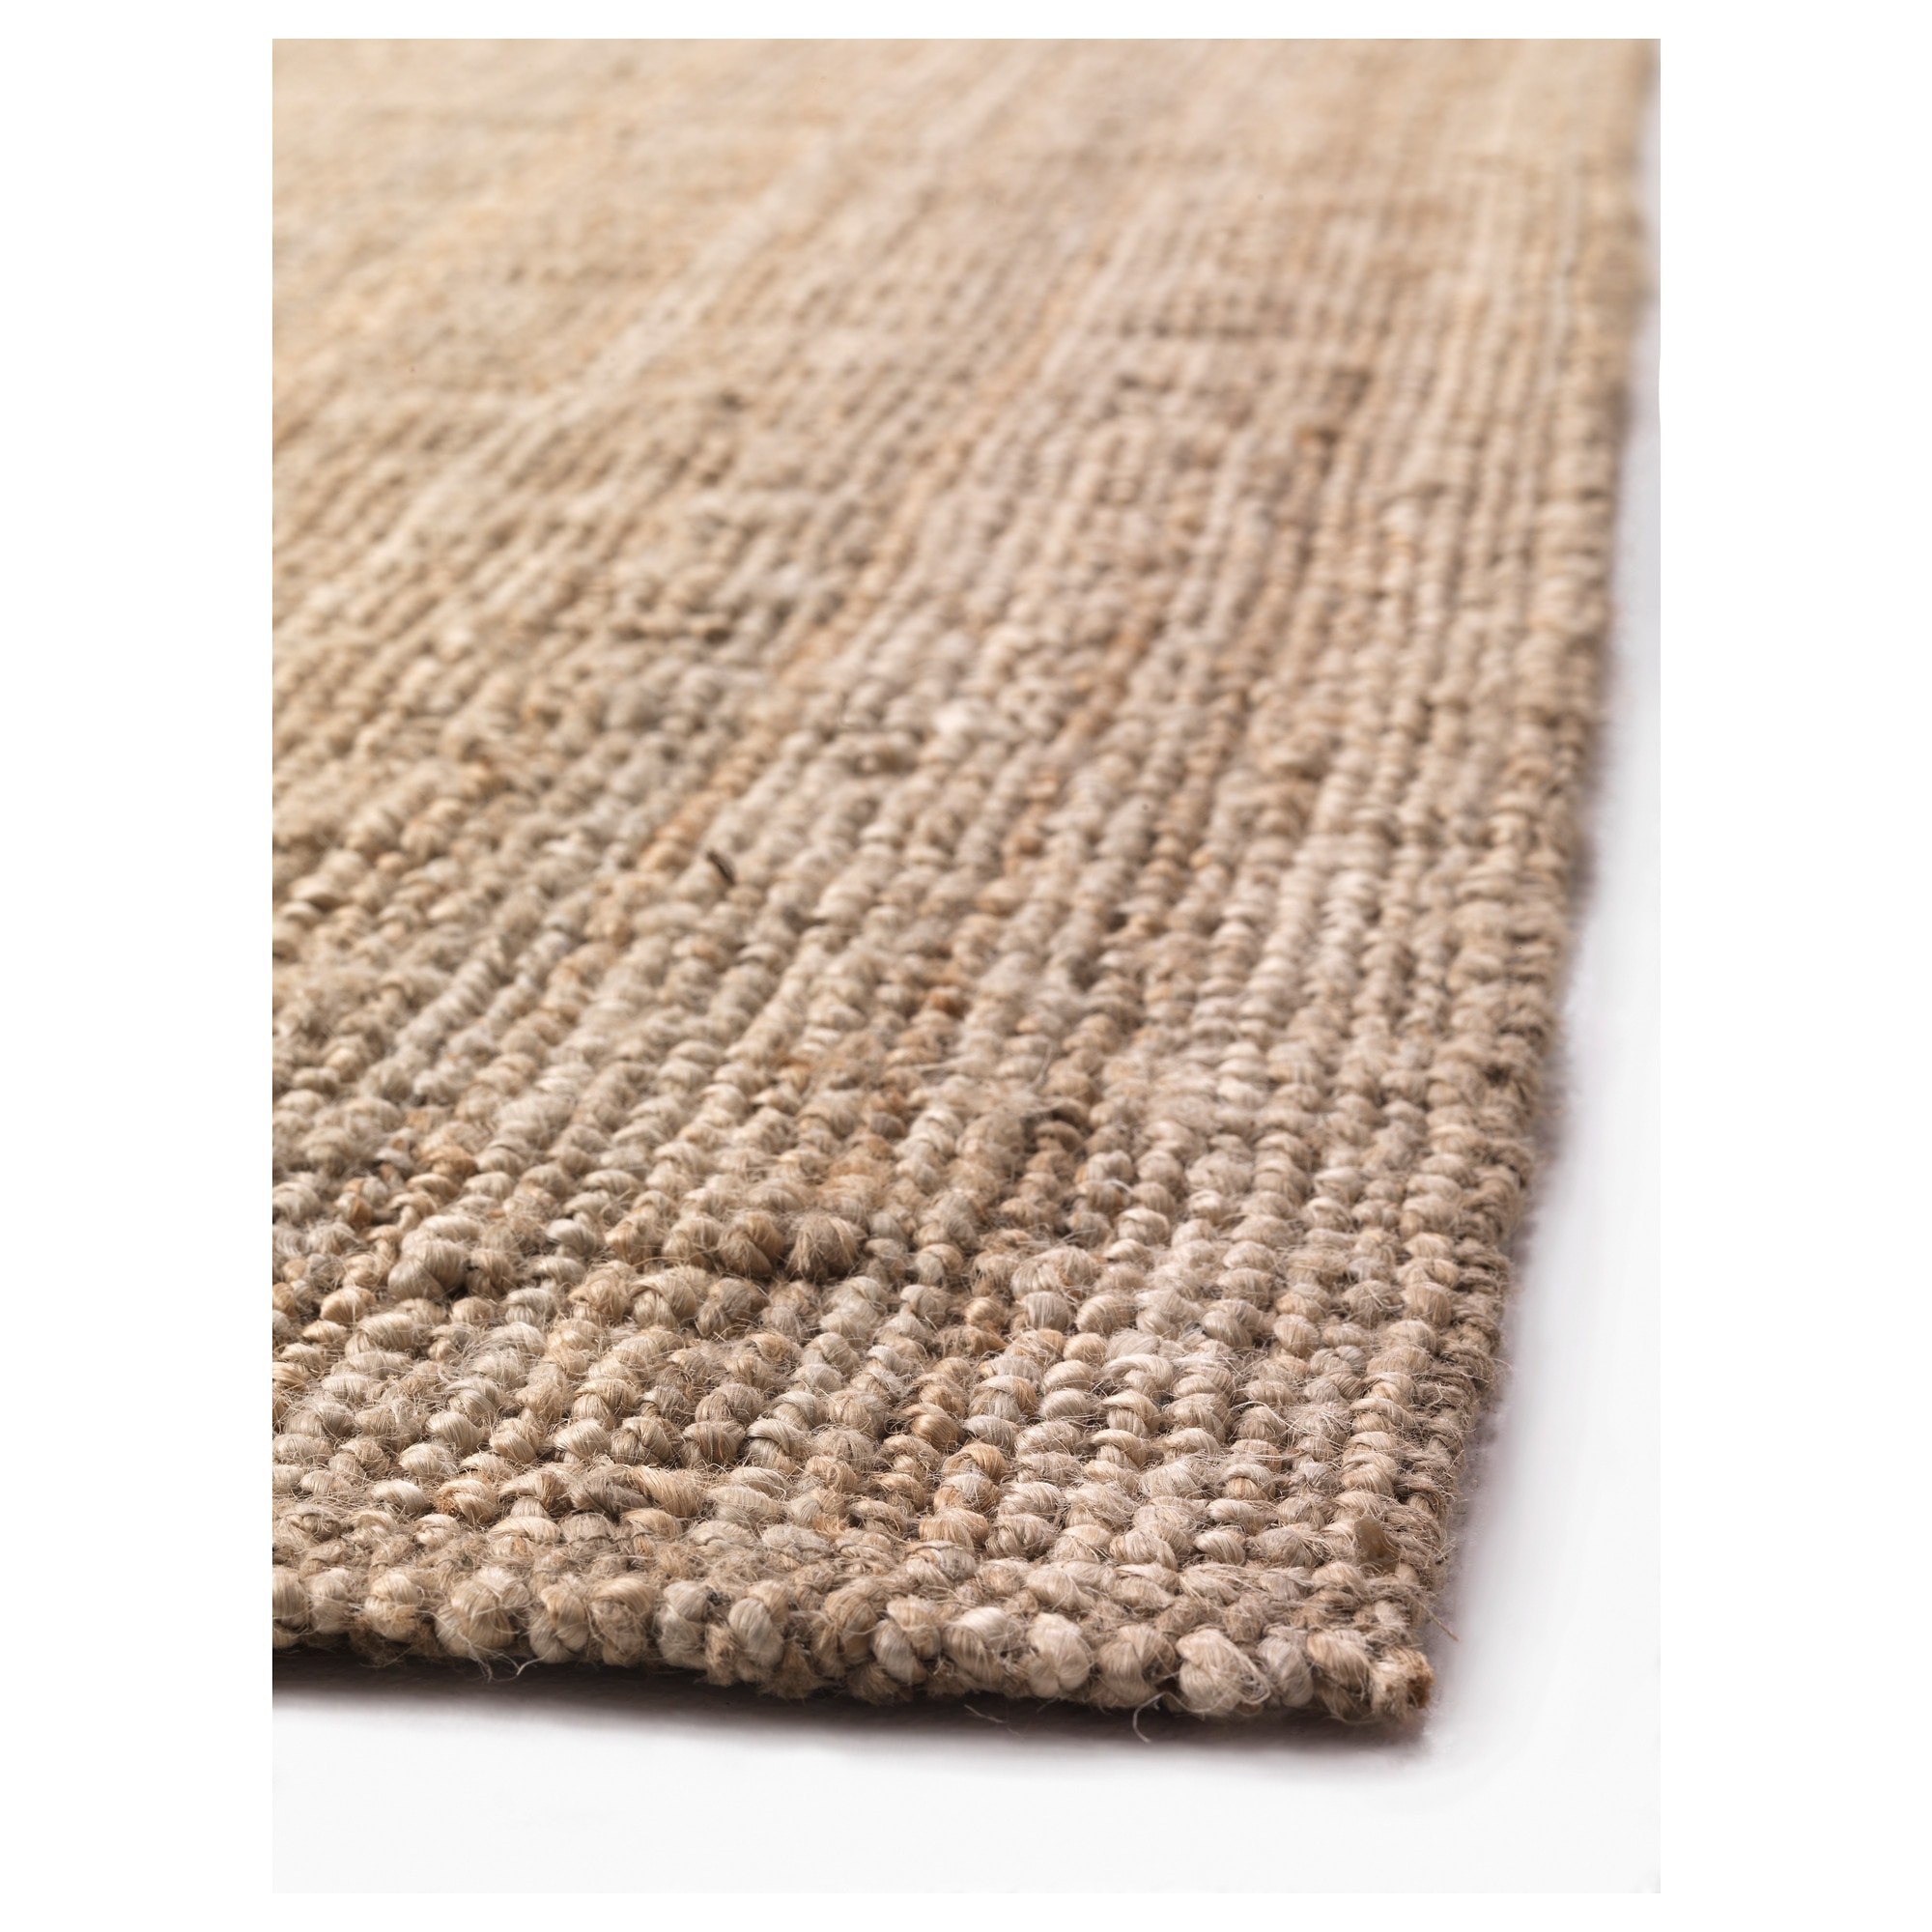 rug pictures jute steps version titled clean to a image with wikihow step how